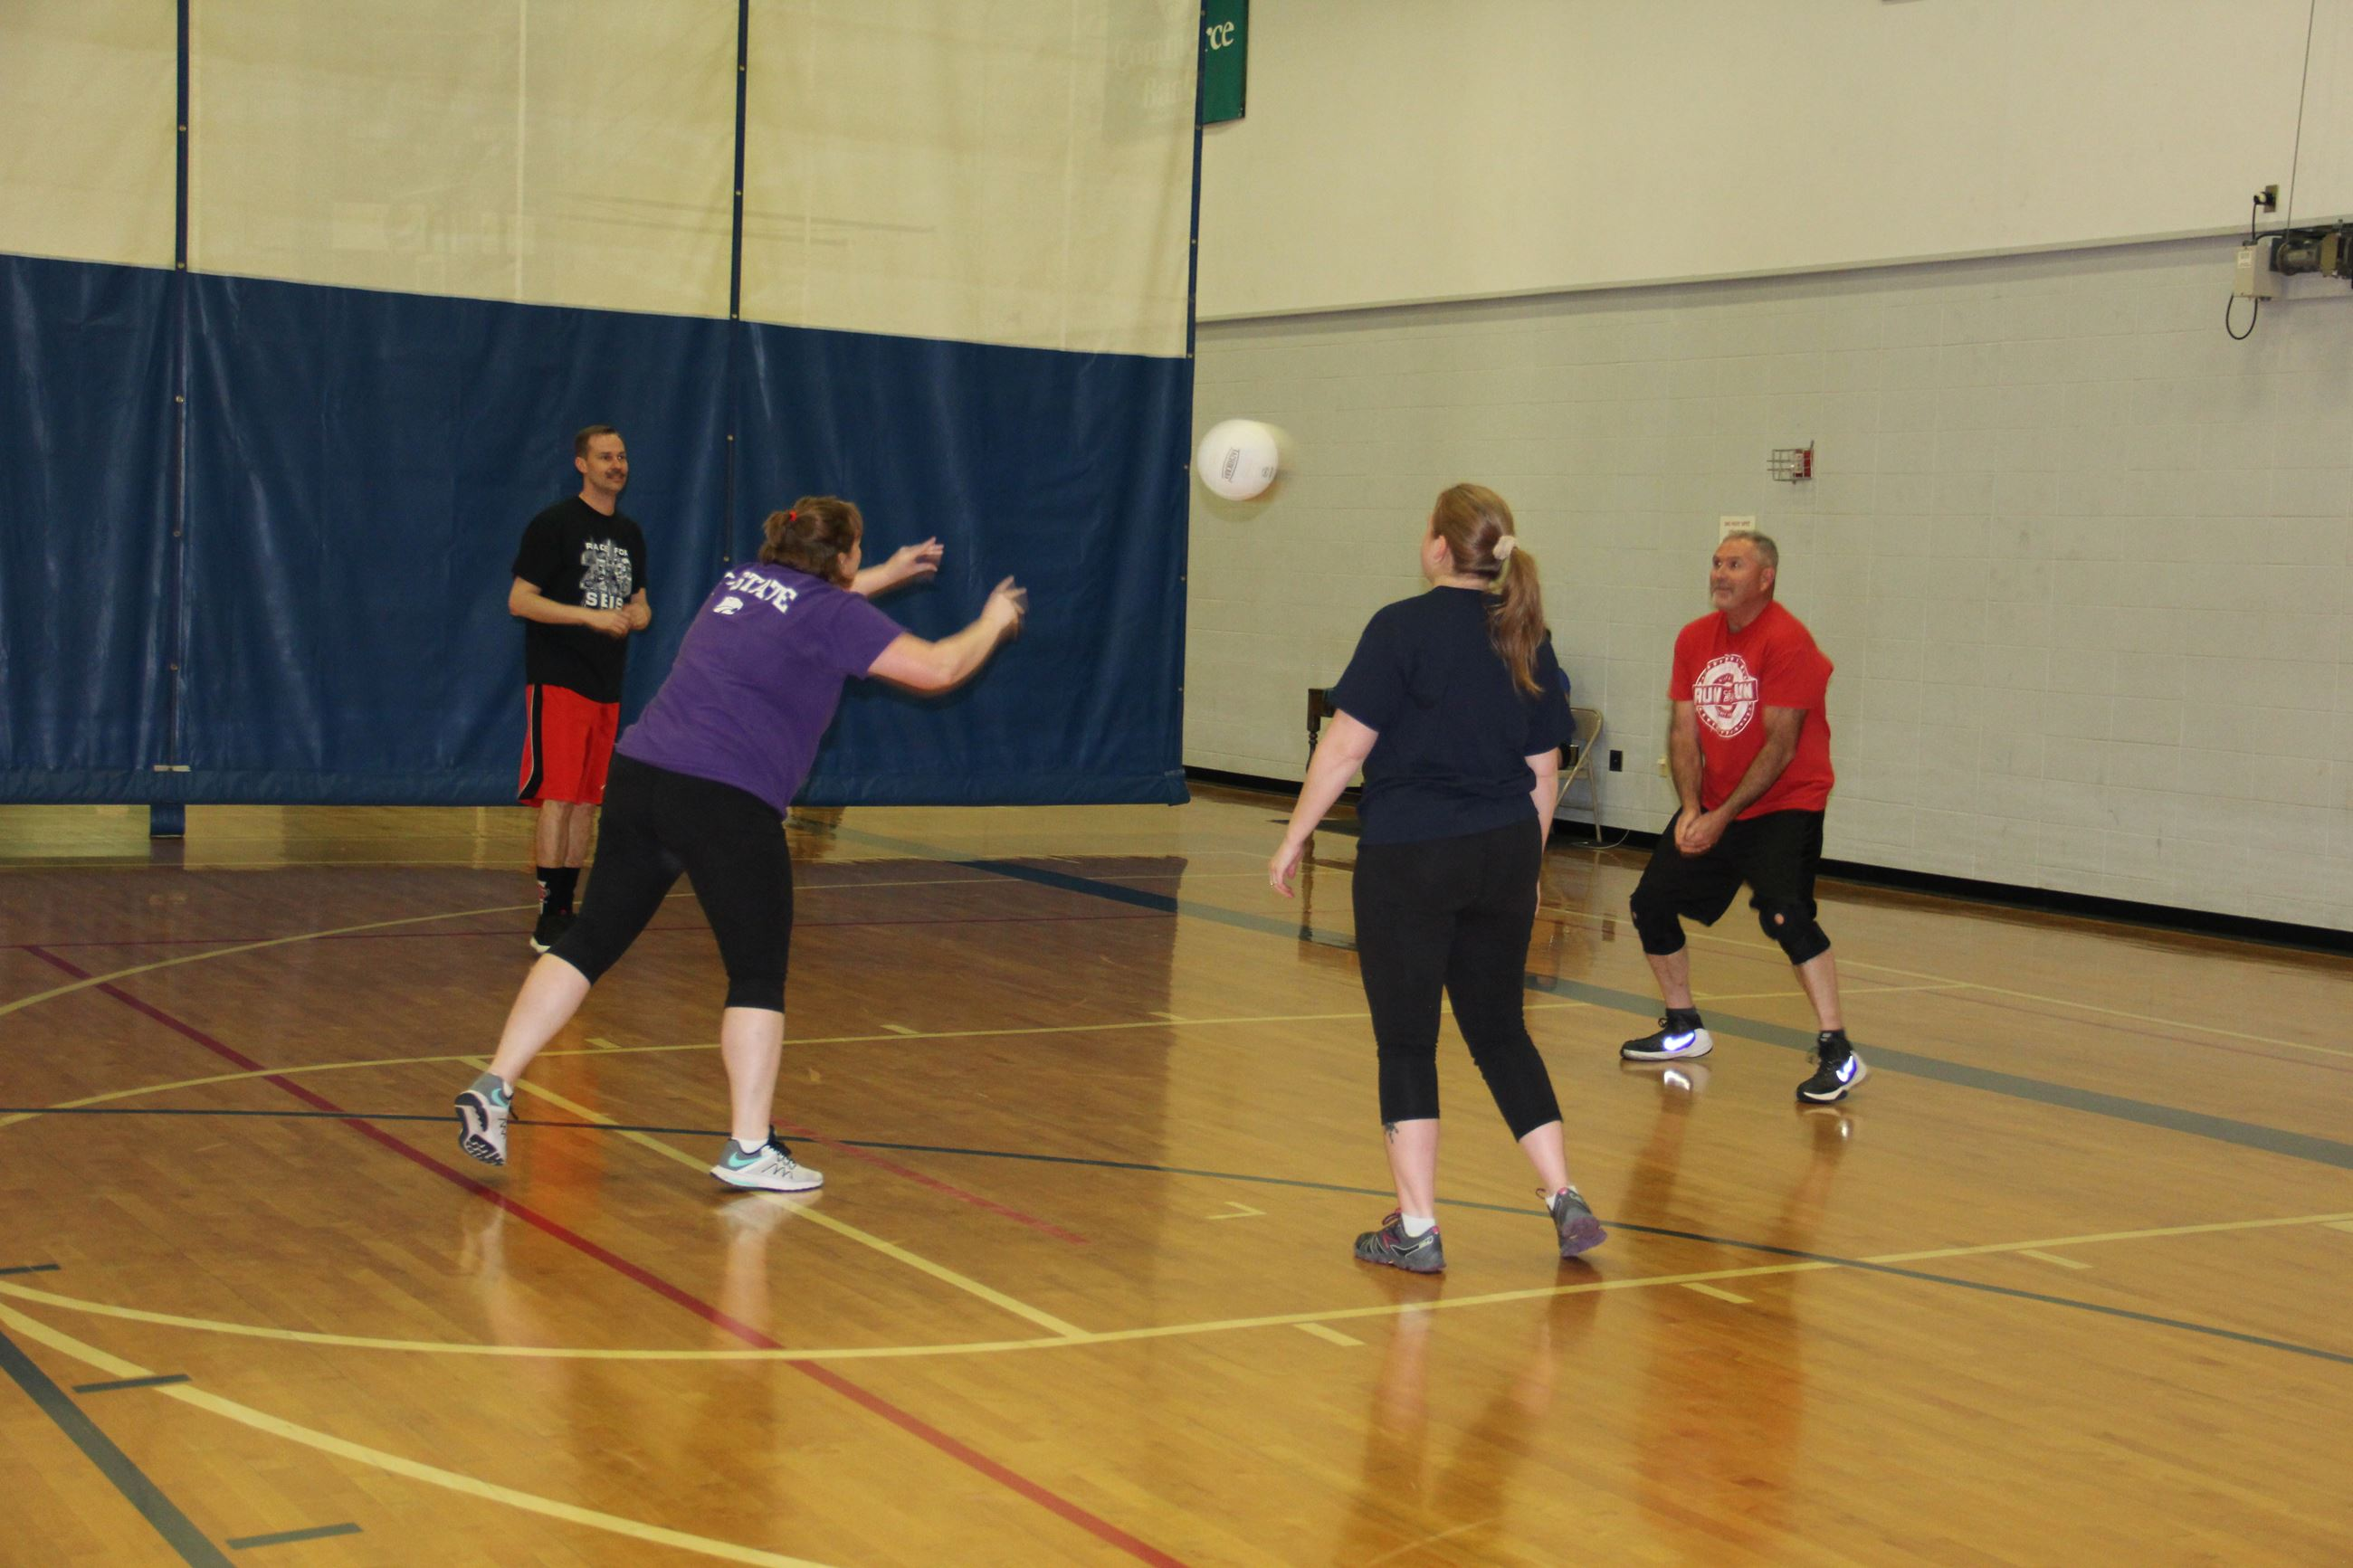 Coed team passing in volleyball